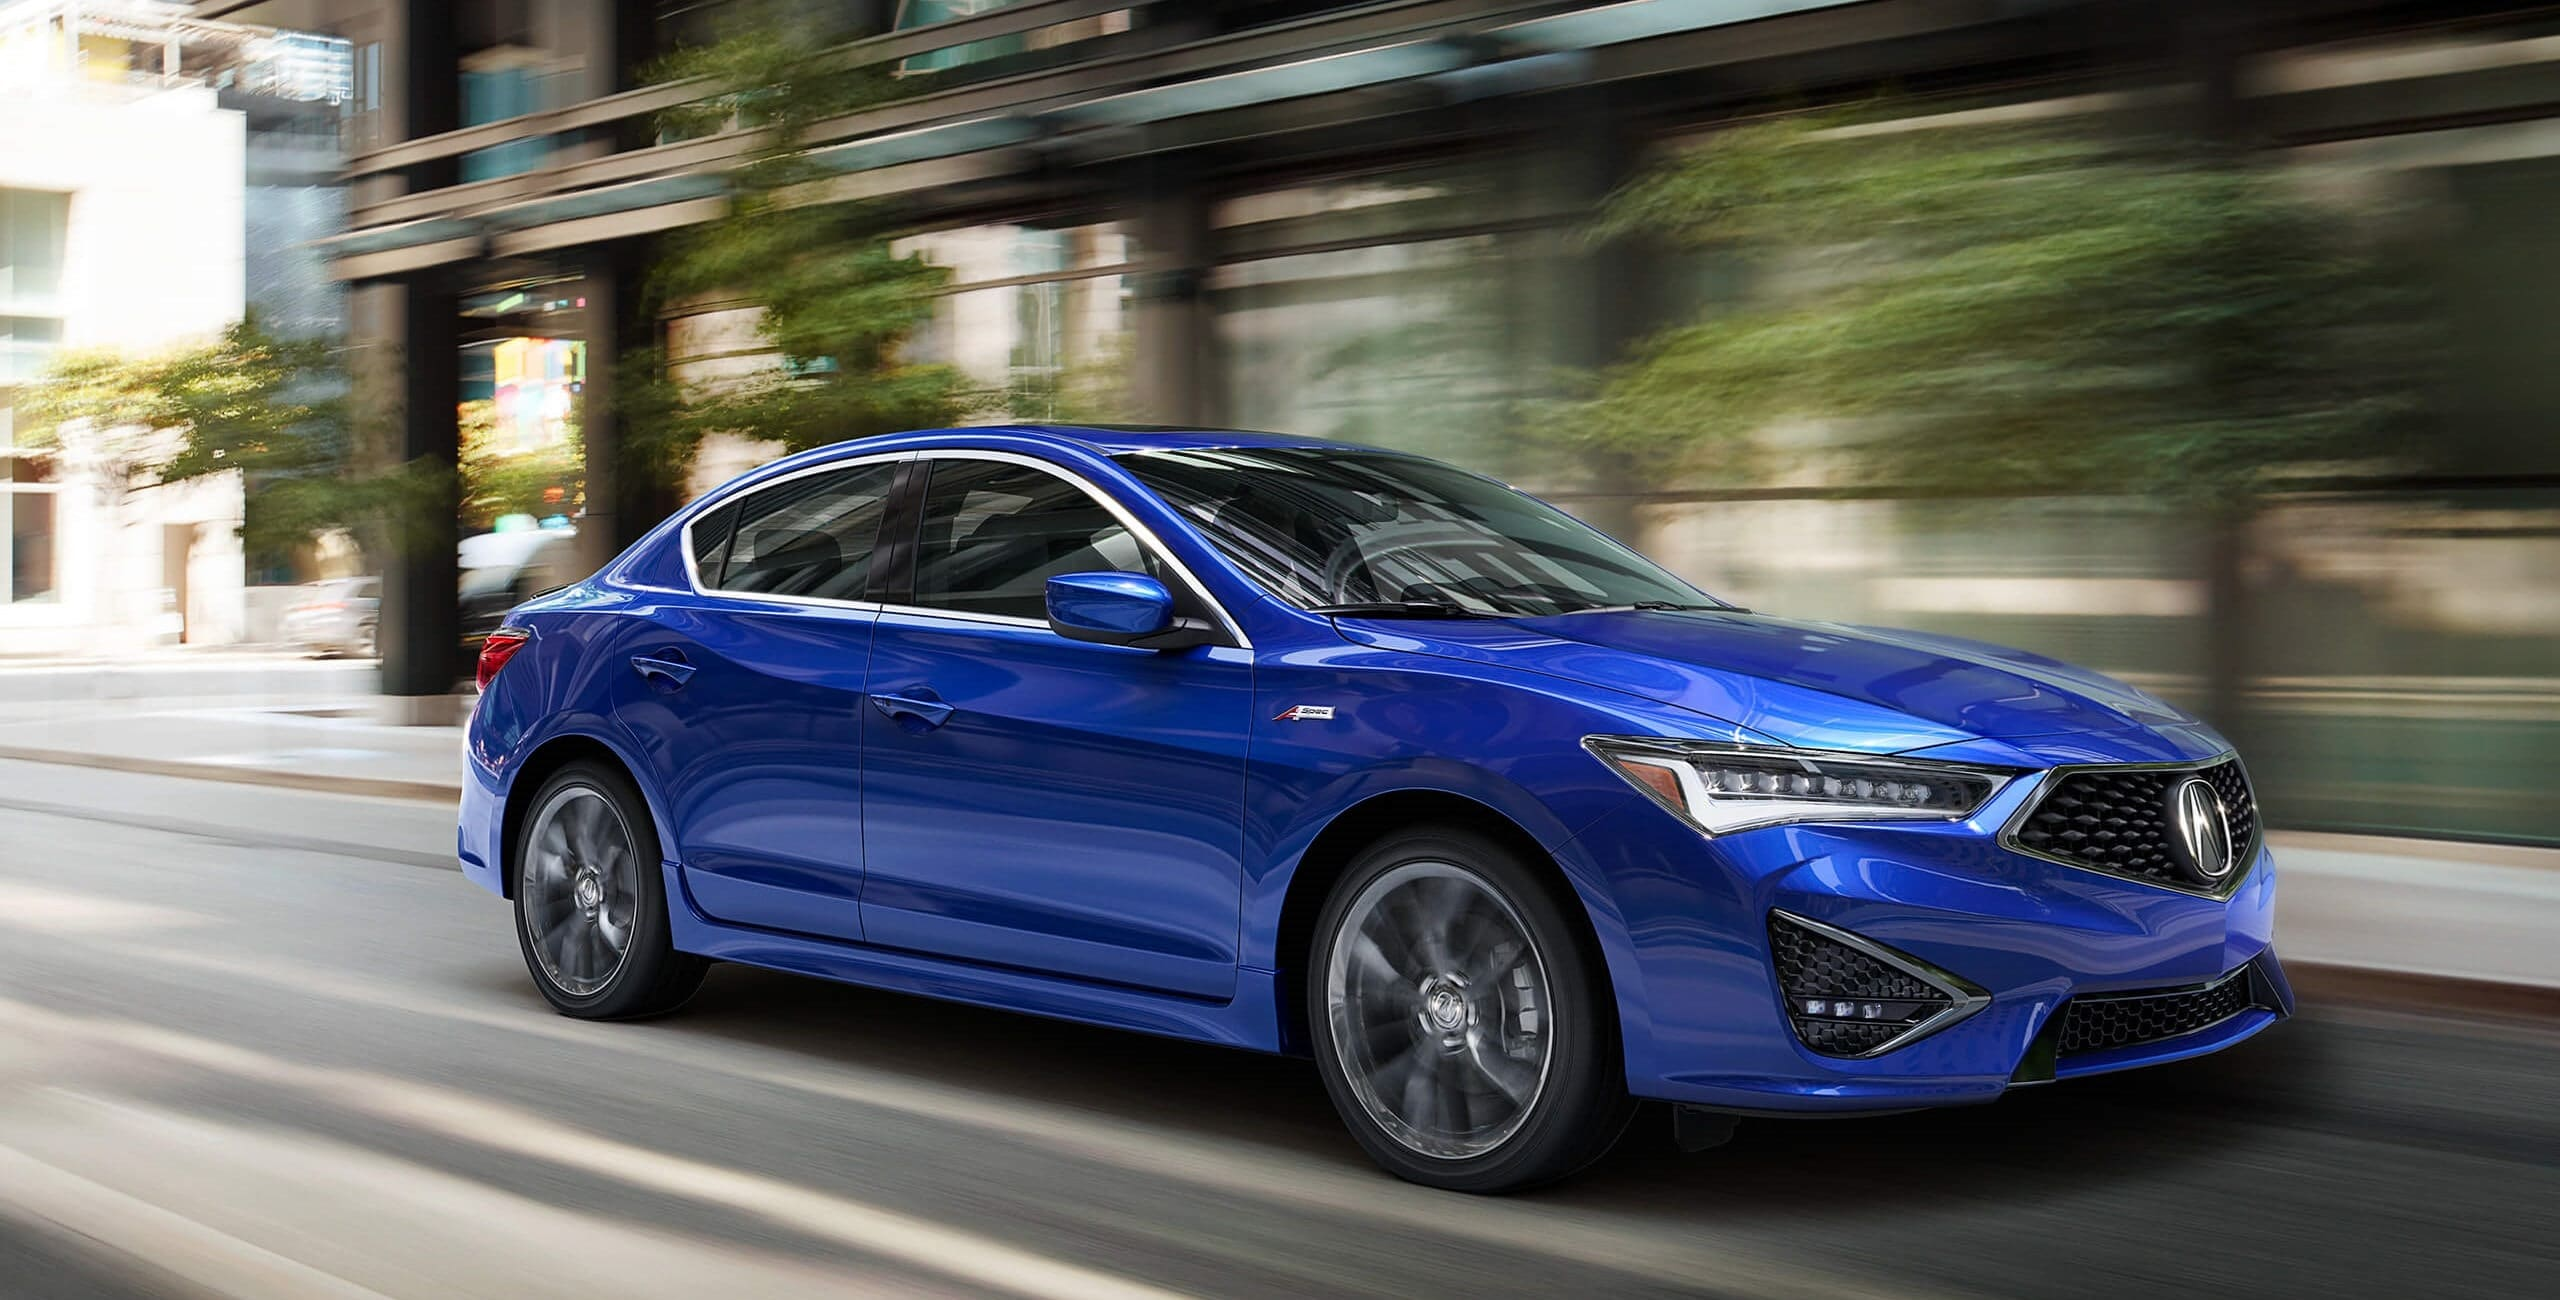 The Top 5 cars with the best quality/price ratio